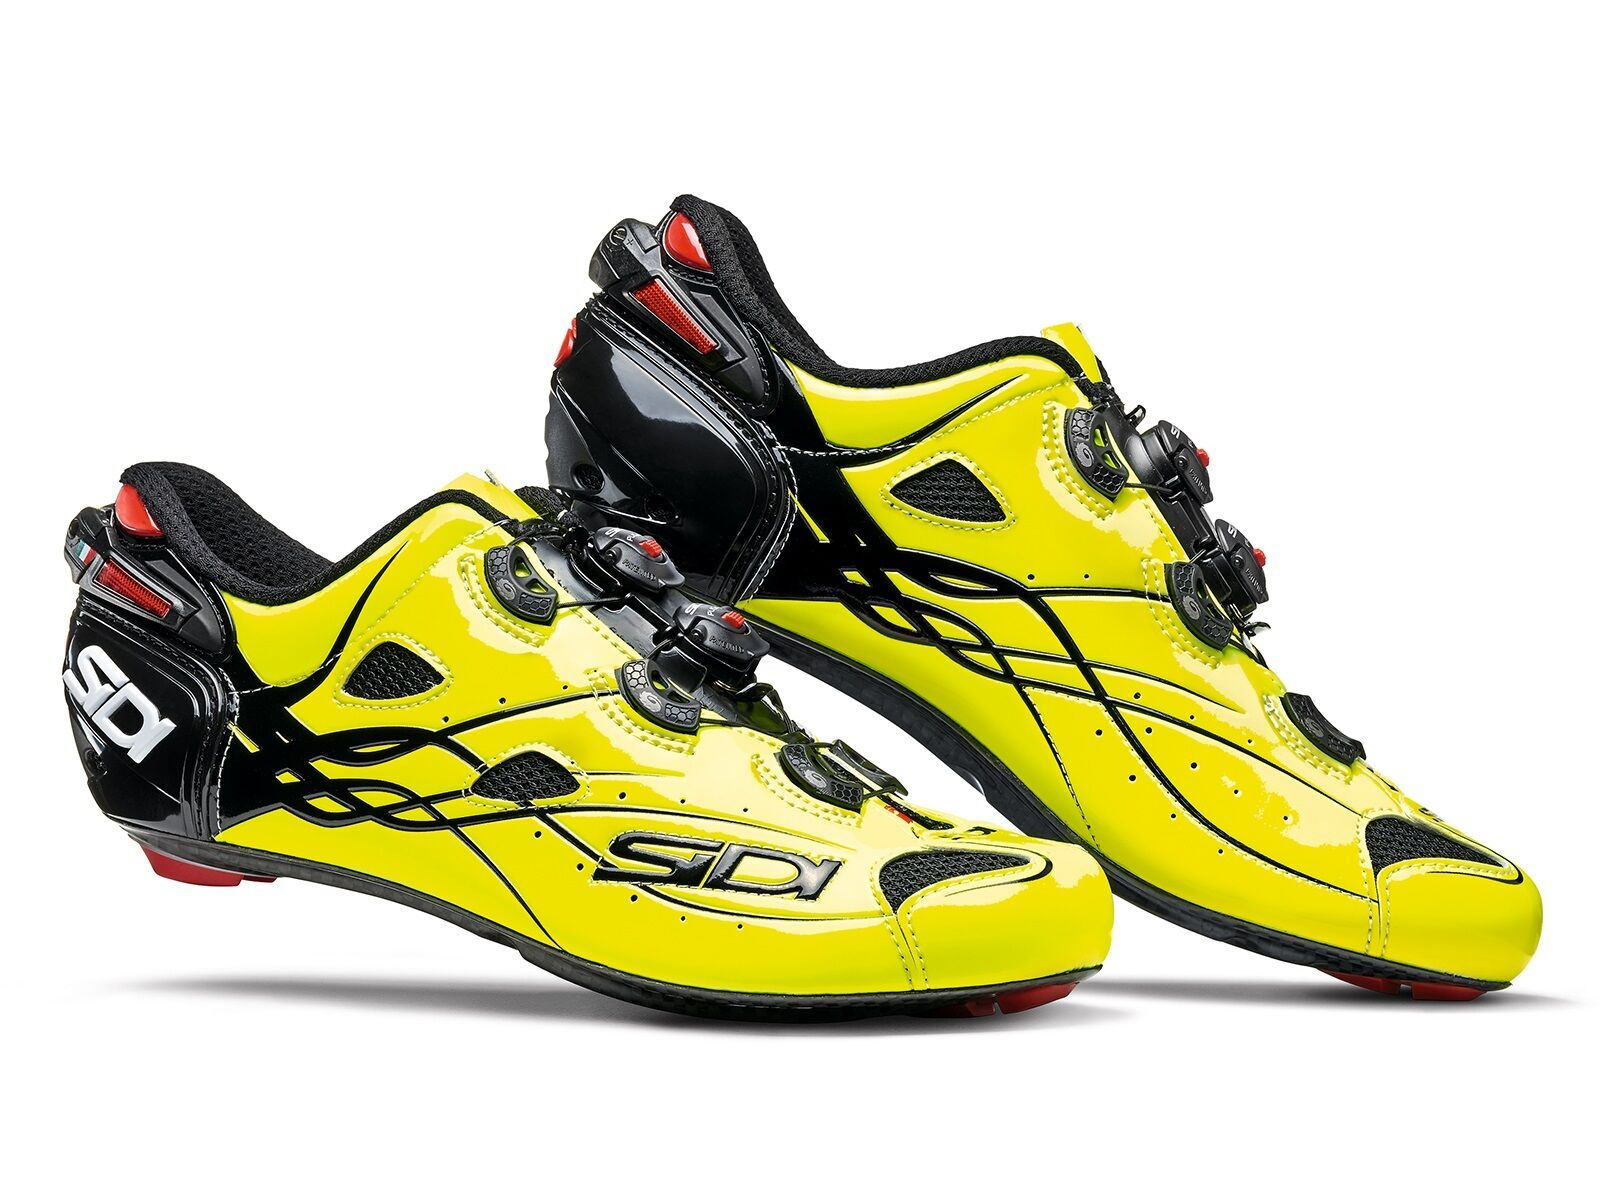 New Sidi Shot Cycling shoes, Bright Yellow, EU40-45